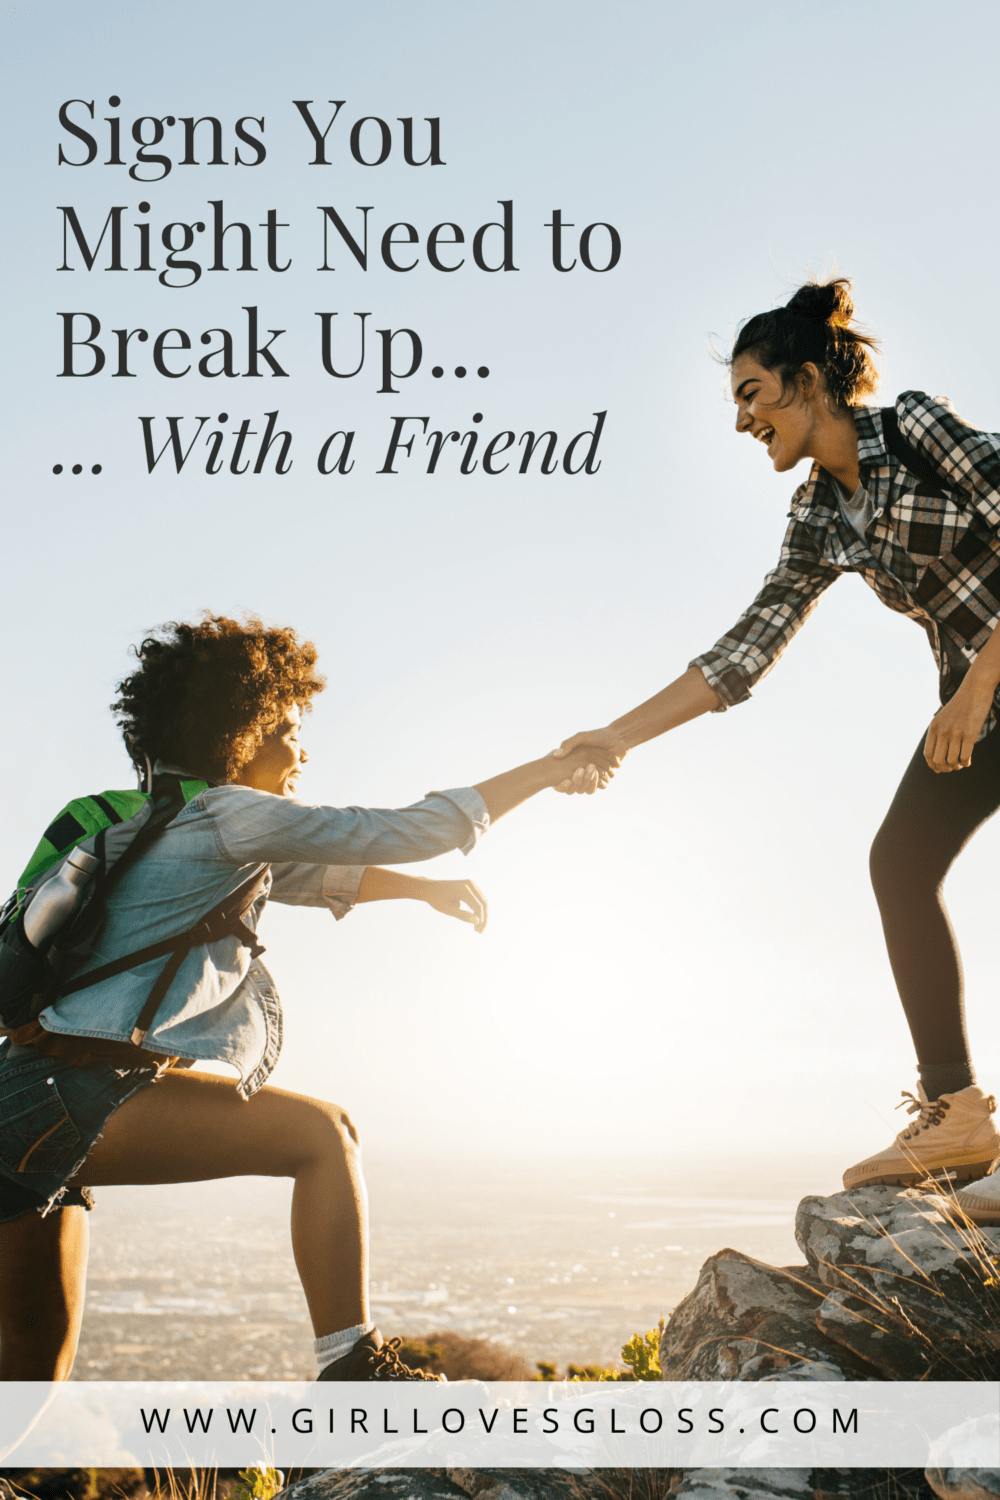 How to Break Up With a Friend